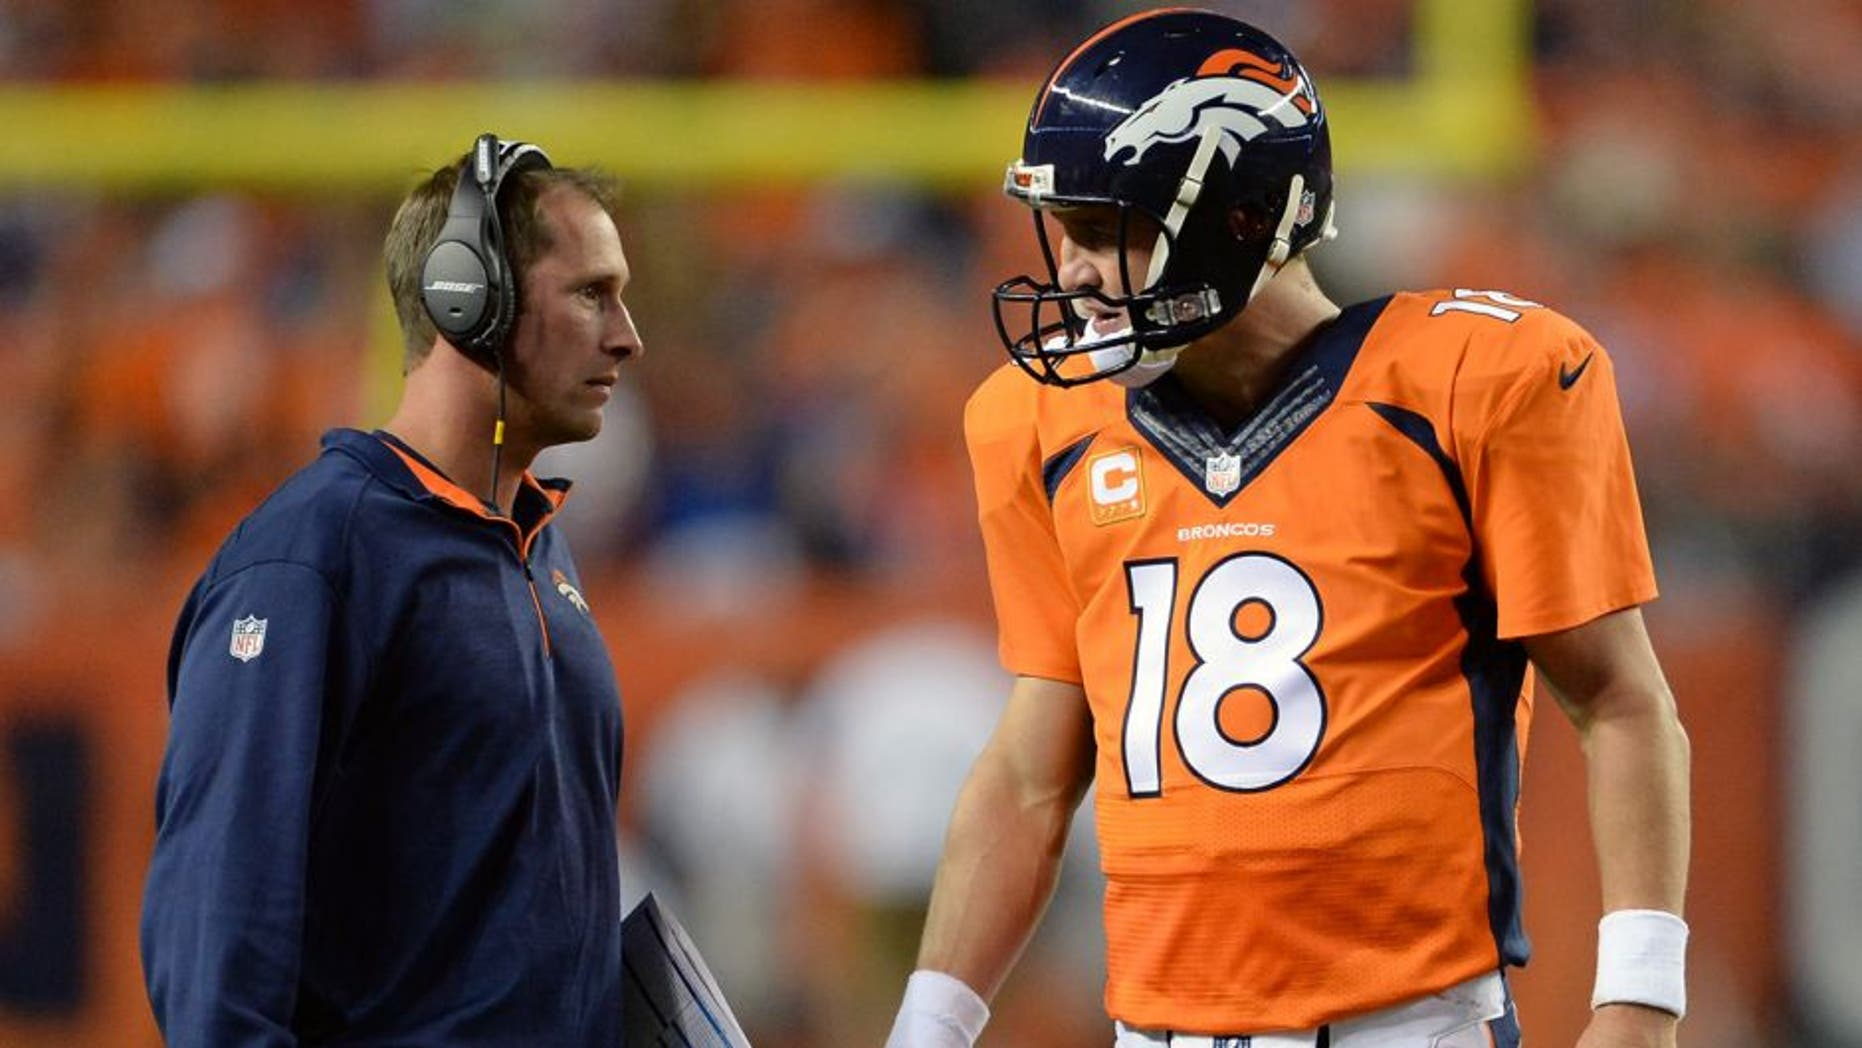 Sep 7, 2014; Denver, CO, USA; Denver Broncos offensive coordinator Adam Gase and quarterback Peyton Manning (18) speak in the second quarter against the Indianapolis Colts at Sports Authority Field at Mile High. The Broncos defeated the Colts 31-24. Mandatory Credit: Ron Chenoy-USA TODAY Sports